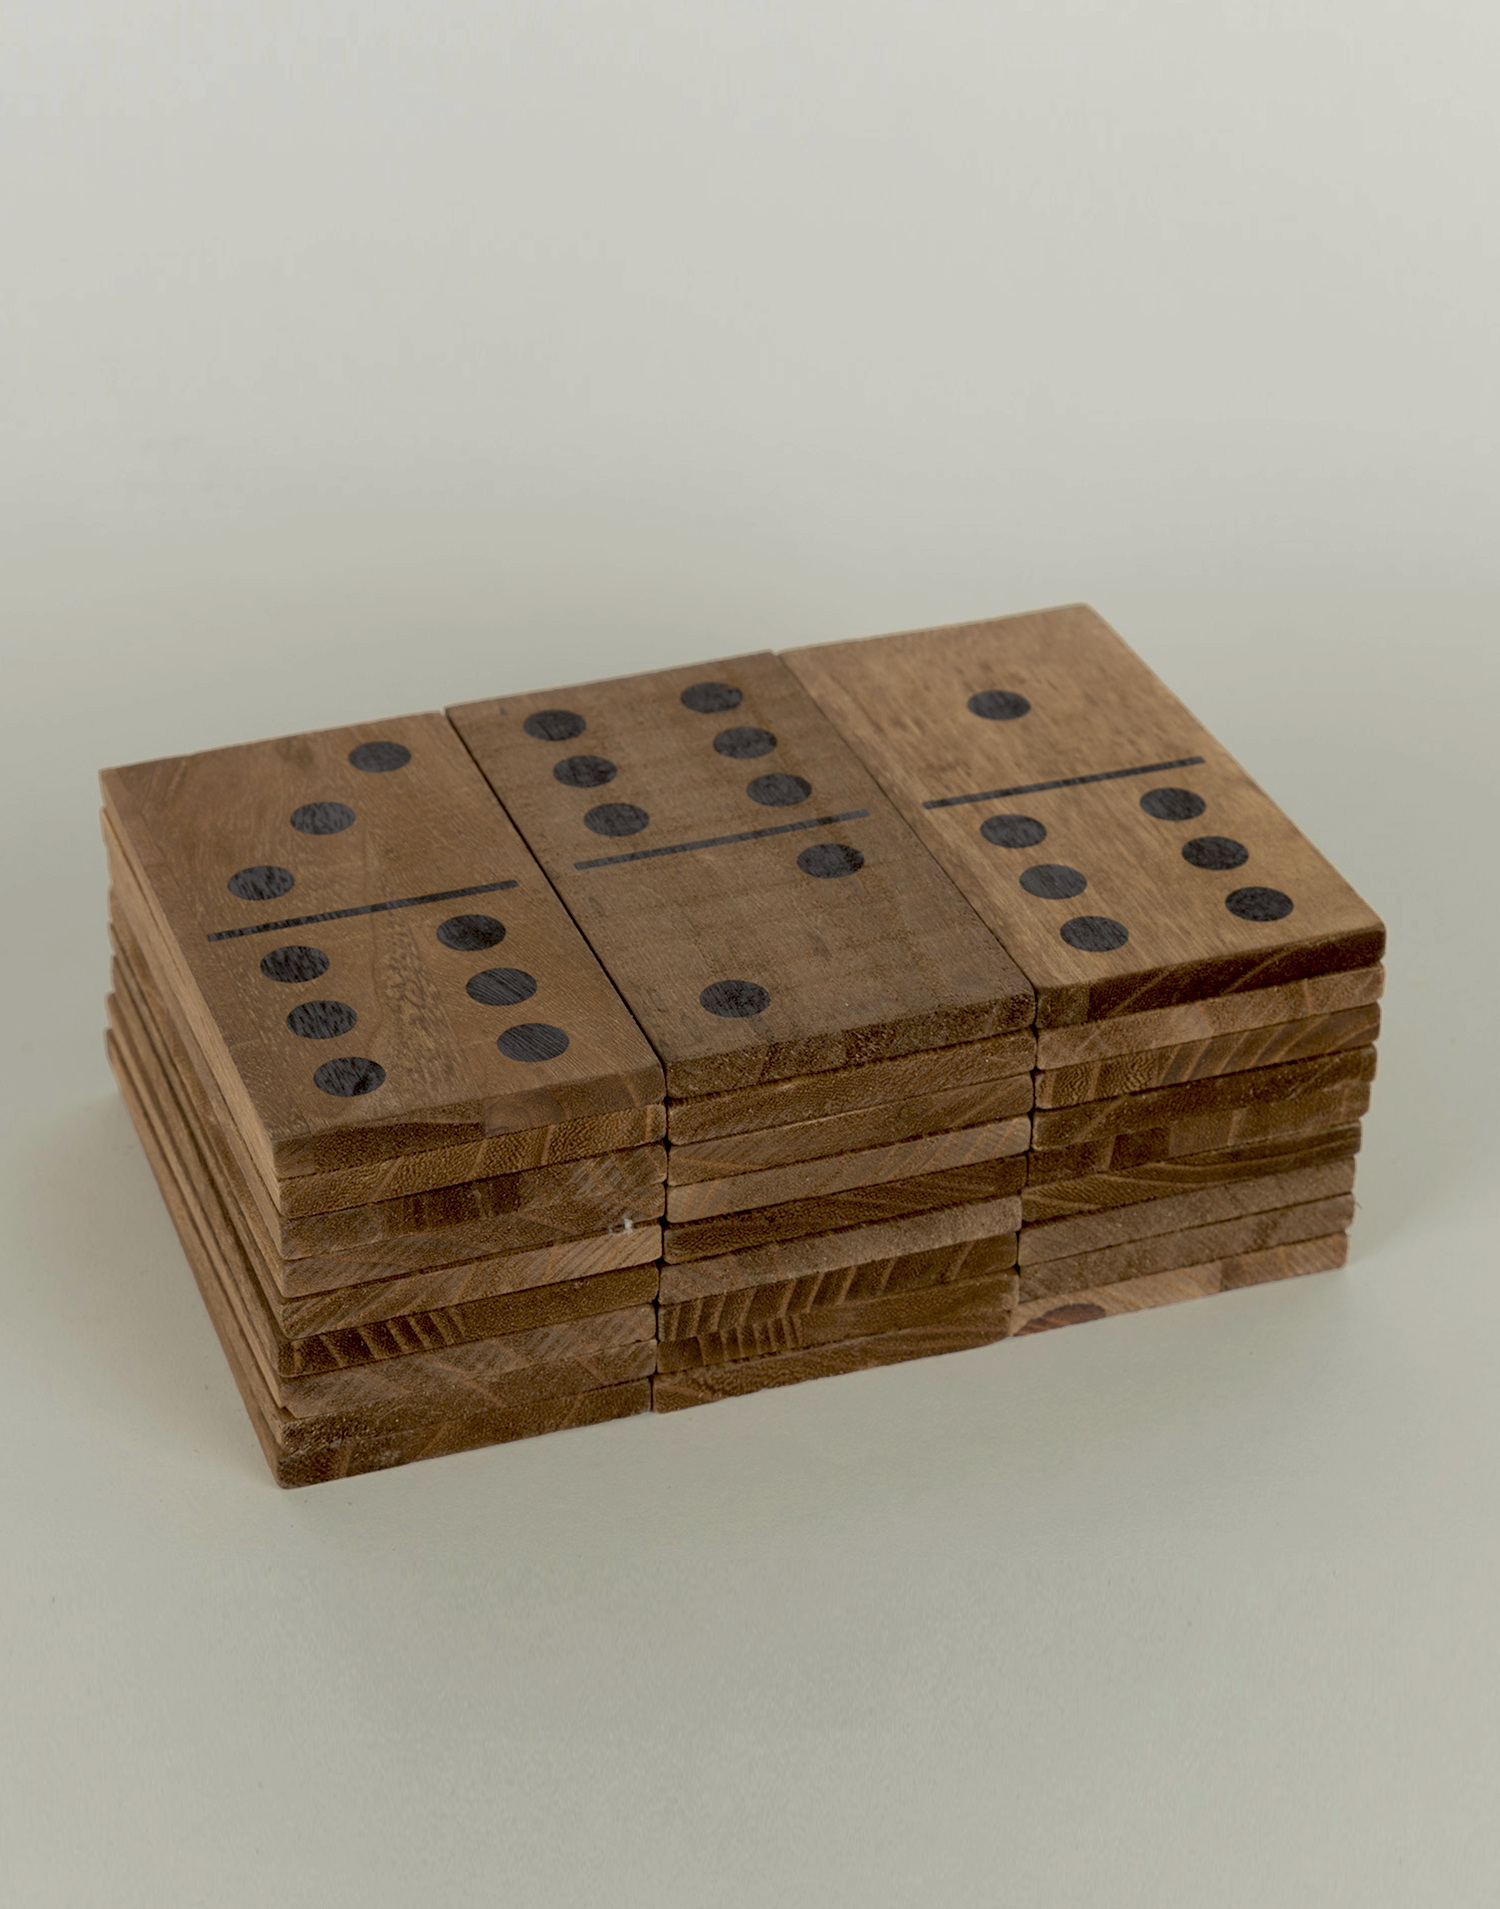 Big size wooden dominoes